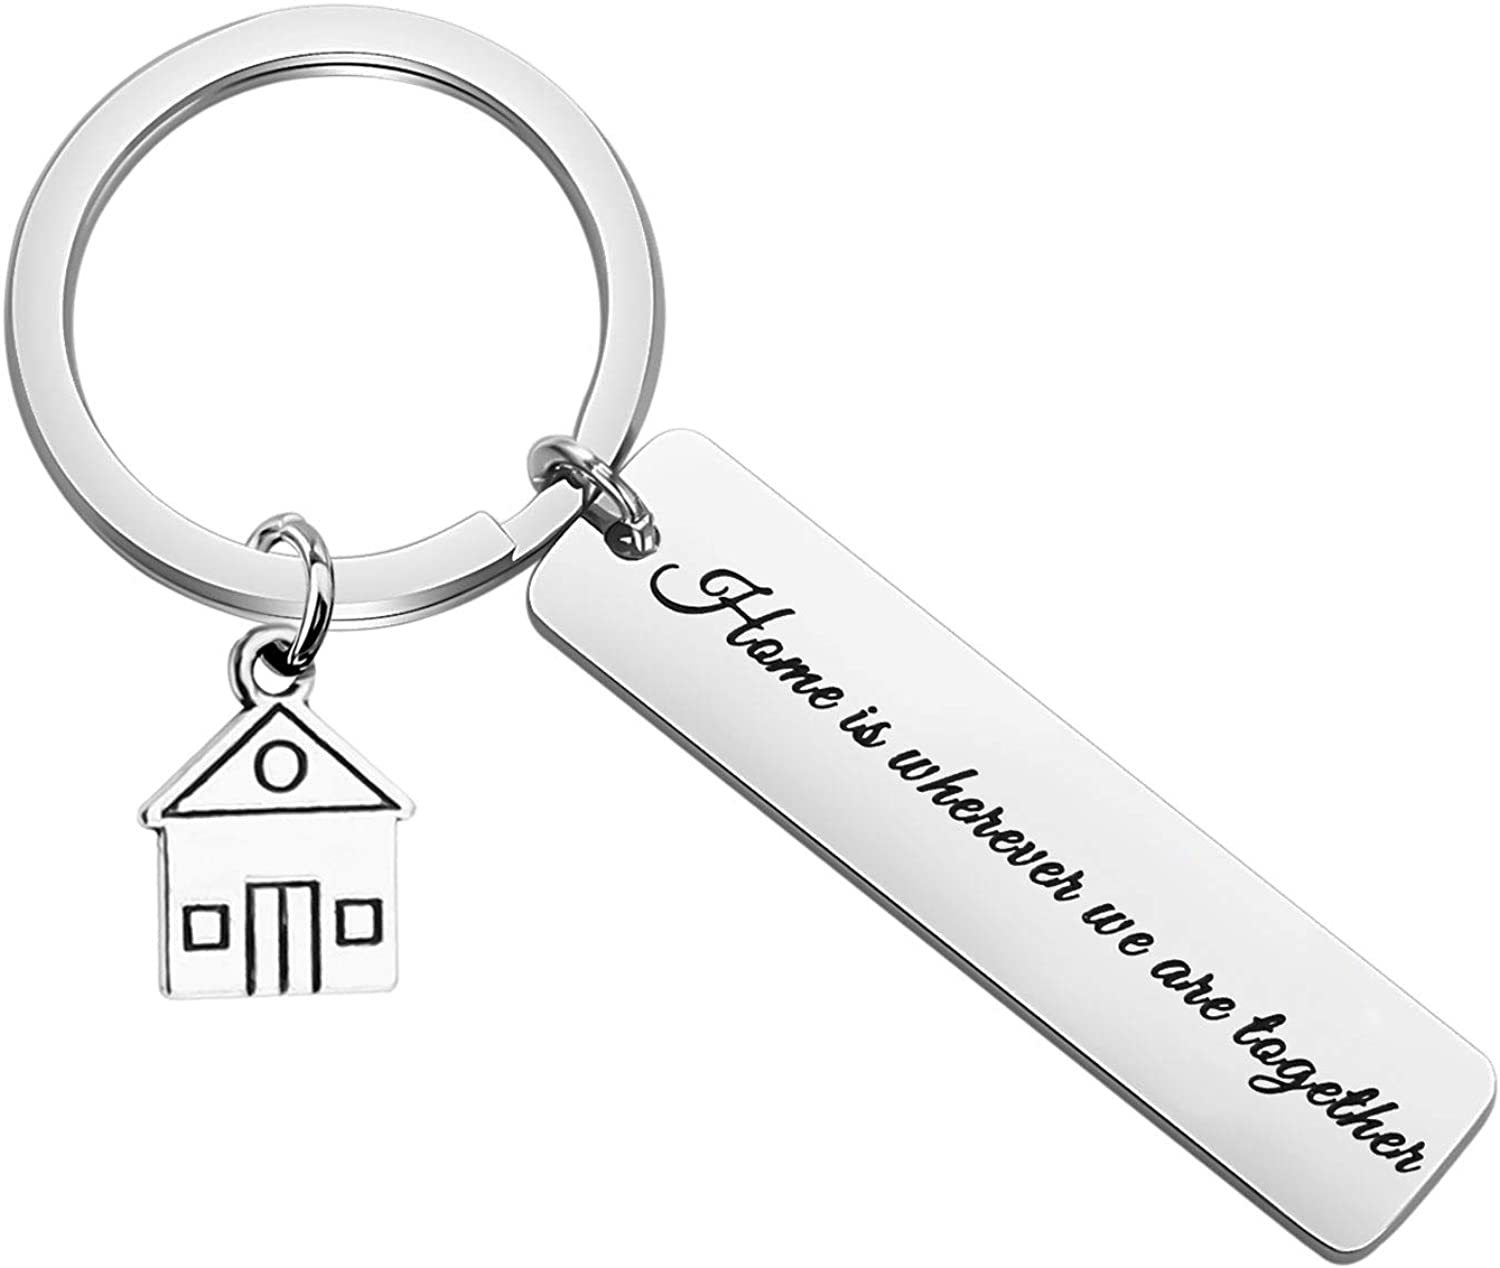 New House Key Chain Funny Apartment Owner Gift Personalized New Apartment Owner Keychain For New Apartment Keyring